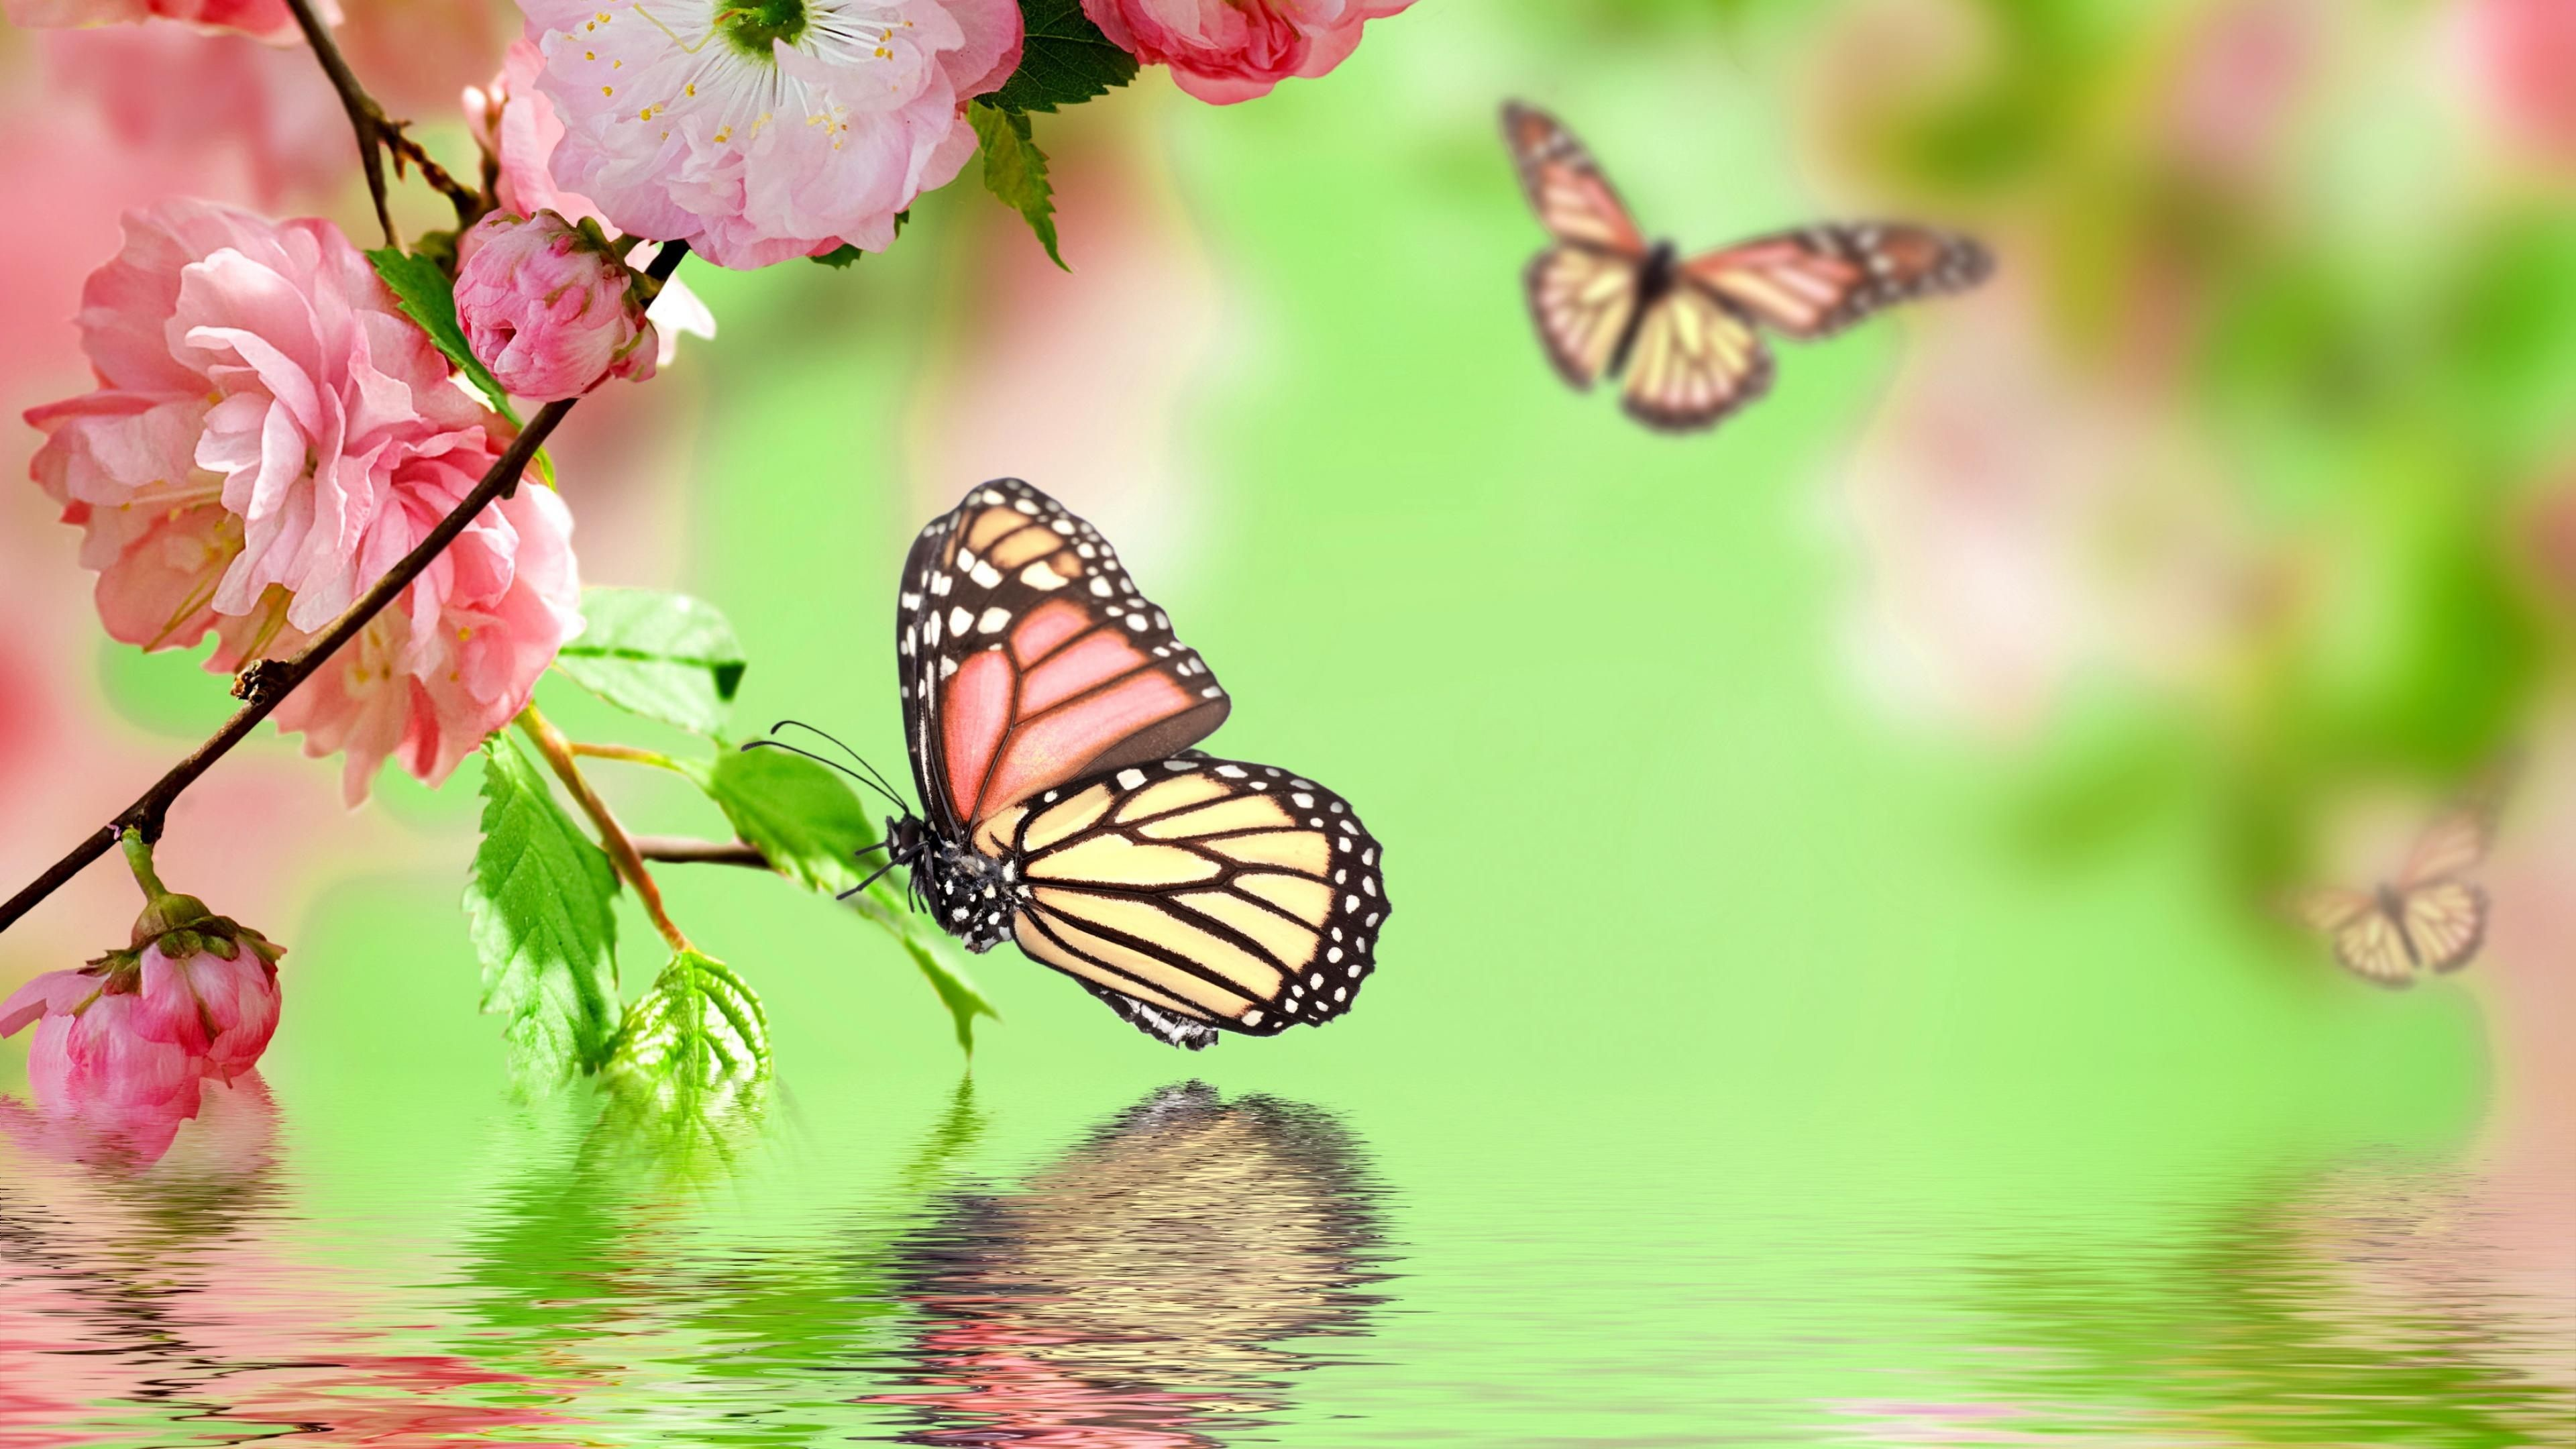 3840x2160 Butterfly Wallpaper Hd